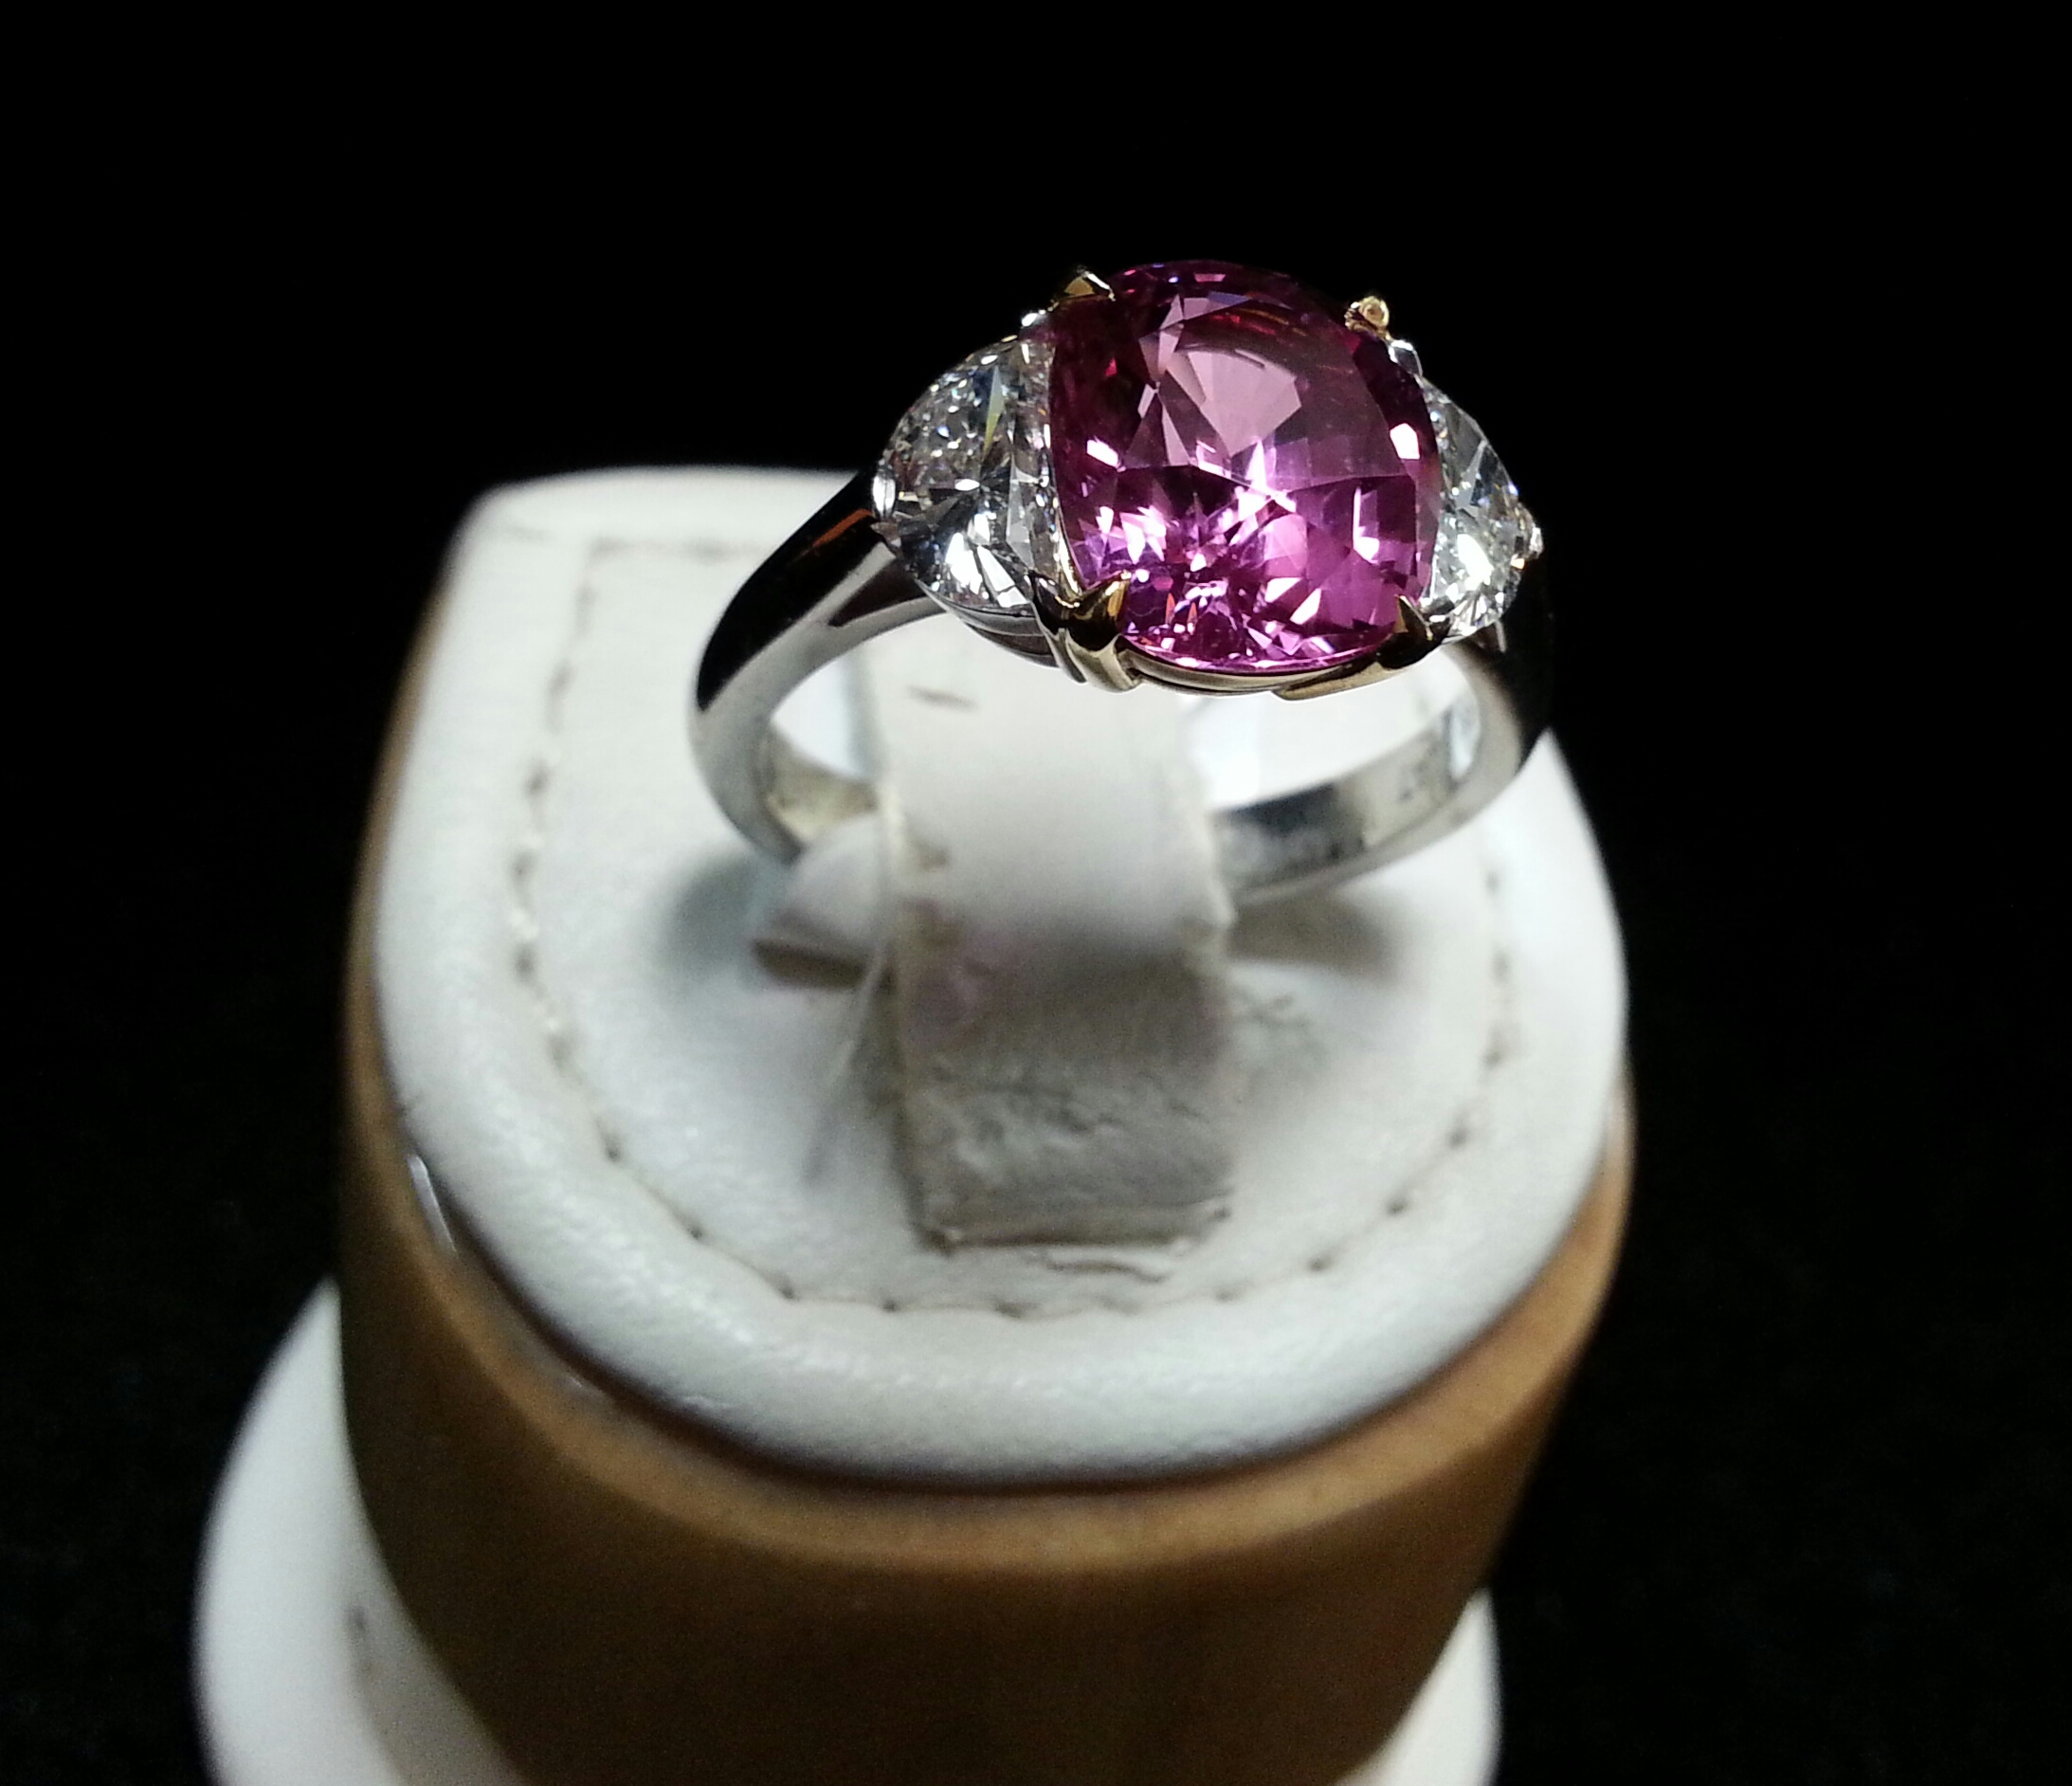 18K Yellow Gold and Platinum Gubelin Certified Natural Un-Heated Cushion Cut Pink Sapphire and Moon Shaped Diamond Ring. Sapphire is 3.54ct and Diamonds are 0.81ct Each